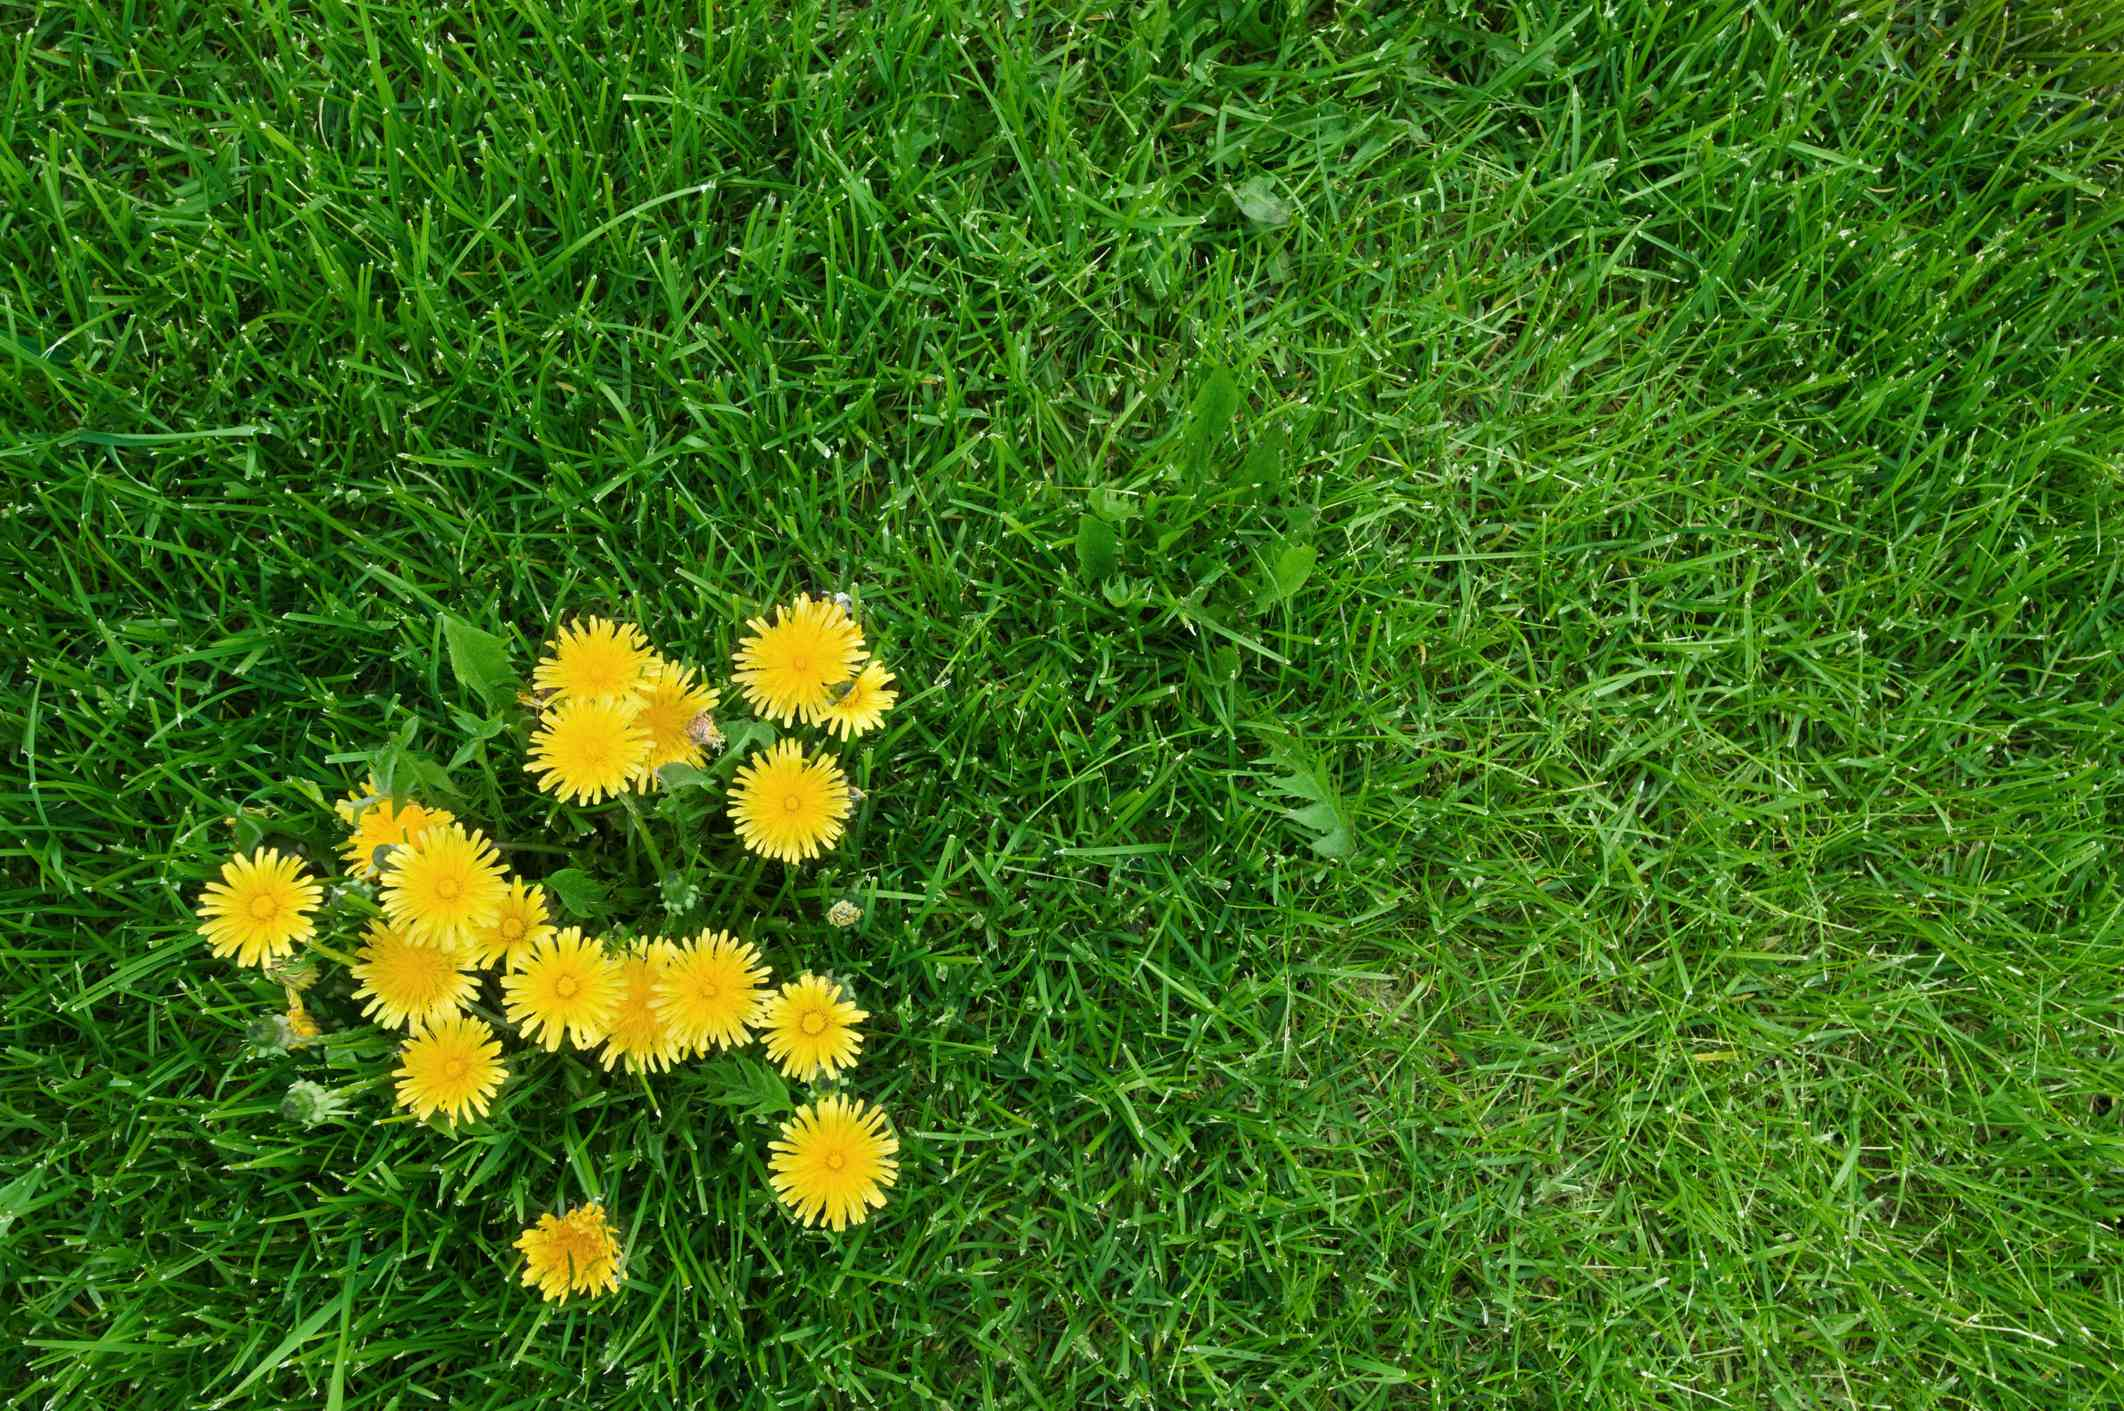 A cluster of dandelions growing in grass